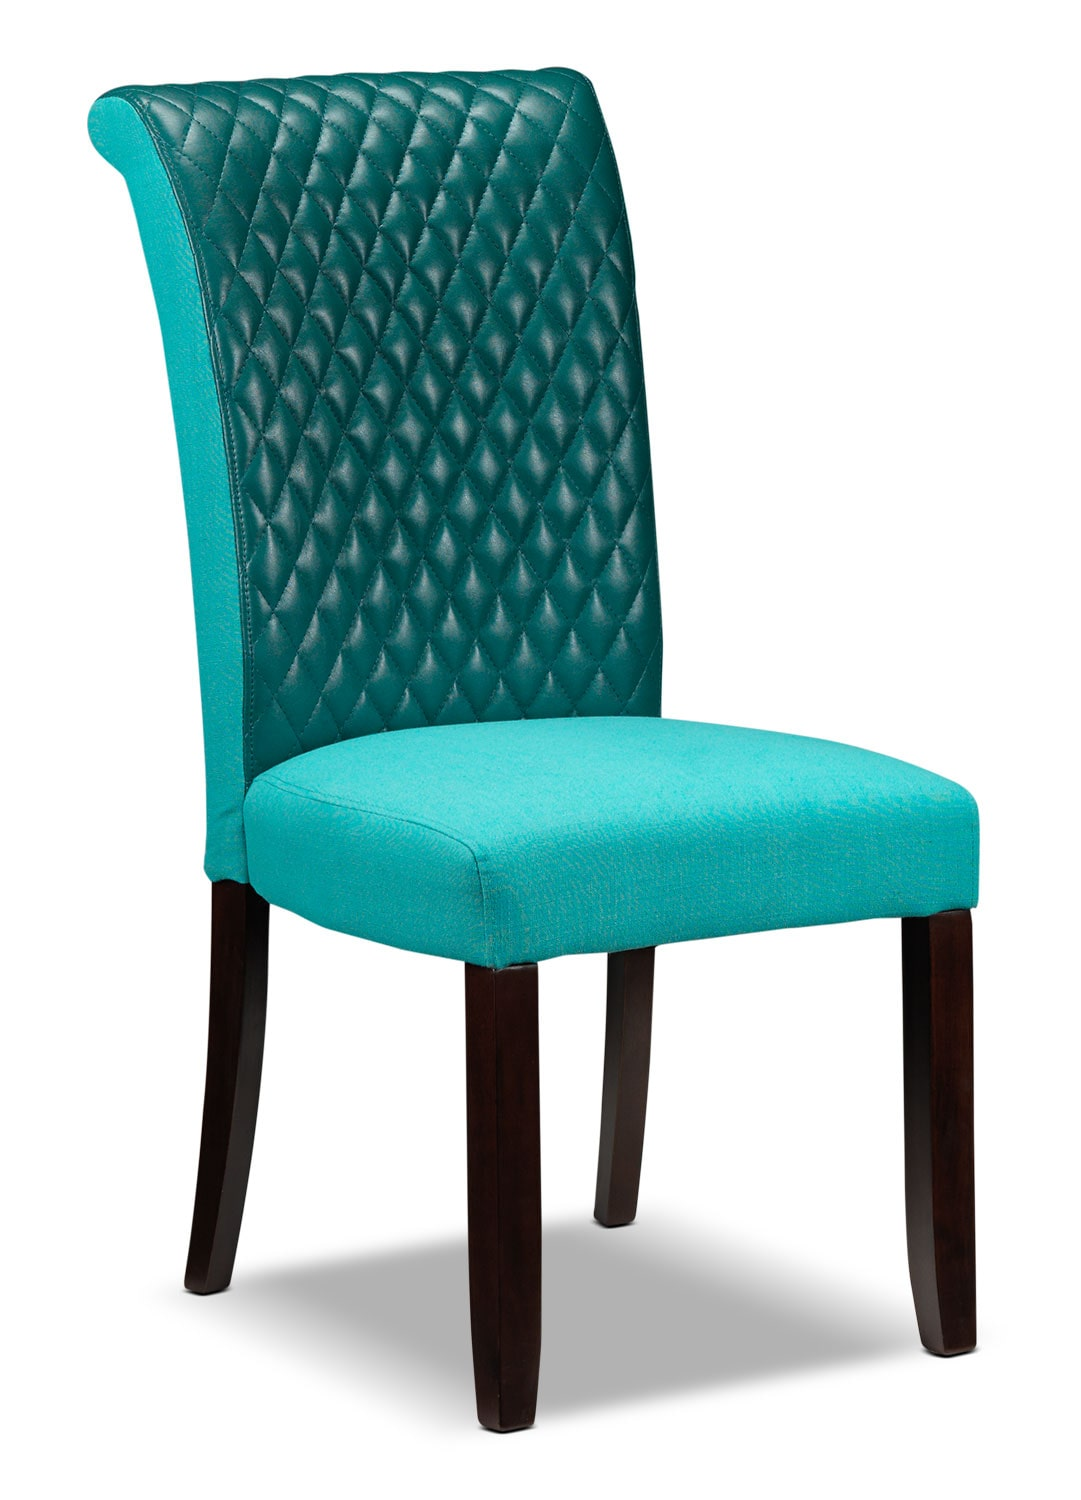 Dining Room Furniture - Flora Chair - Teal